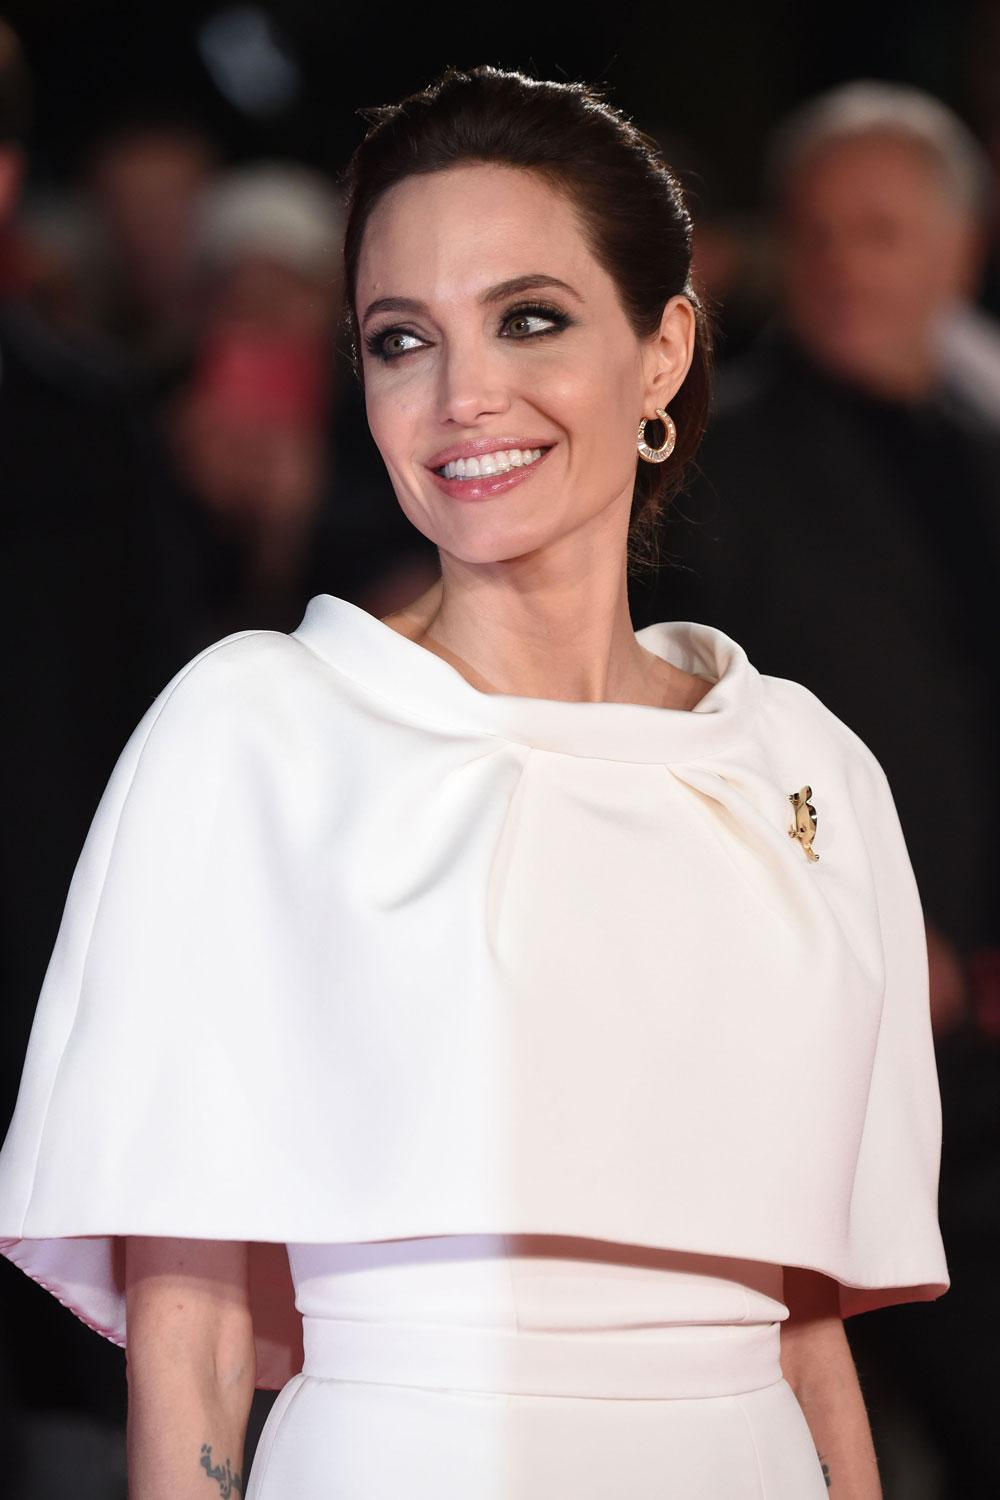 Look of the day has to go to the ever-so elegant Angelina Jolie... http://t.co/DzZAC3OHrH http://t.co/jZy9R4Ri9w